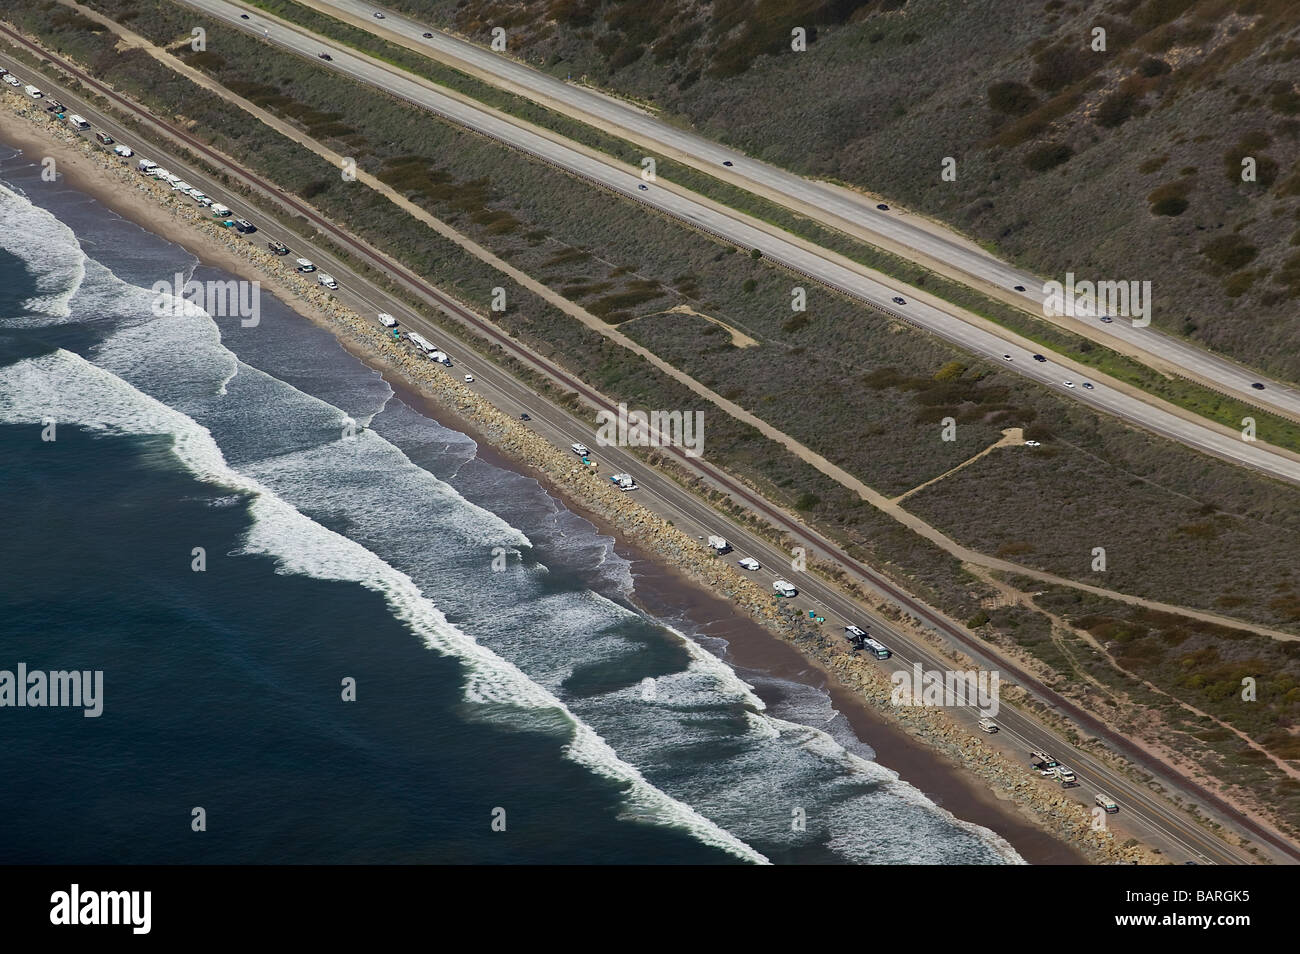 aerial view above many motorhomes parked along pacific coast highway one California - Stock Image